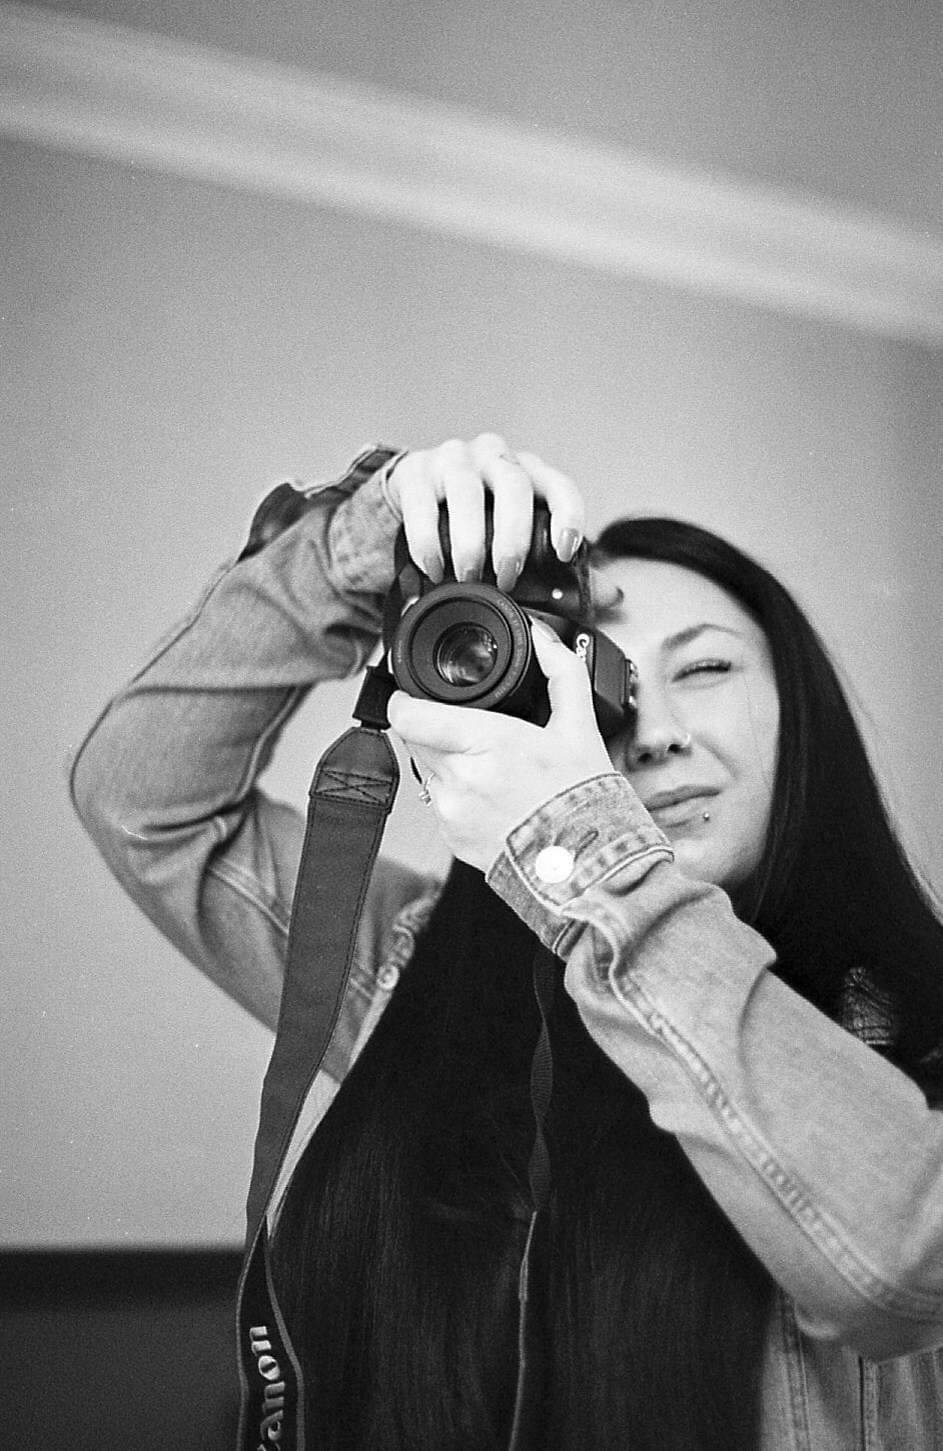 A black and white photo of a girl with long black hair, lip piercings and long nails wearing a denim jacket whilst taking a photo on a canon 70D in black and white. Photo is of myself, Jordanne lee